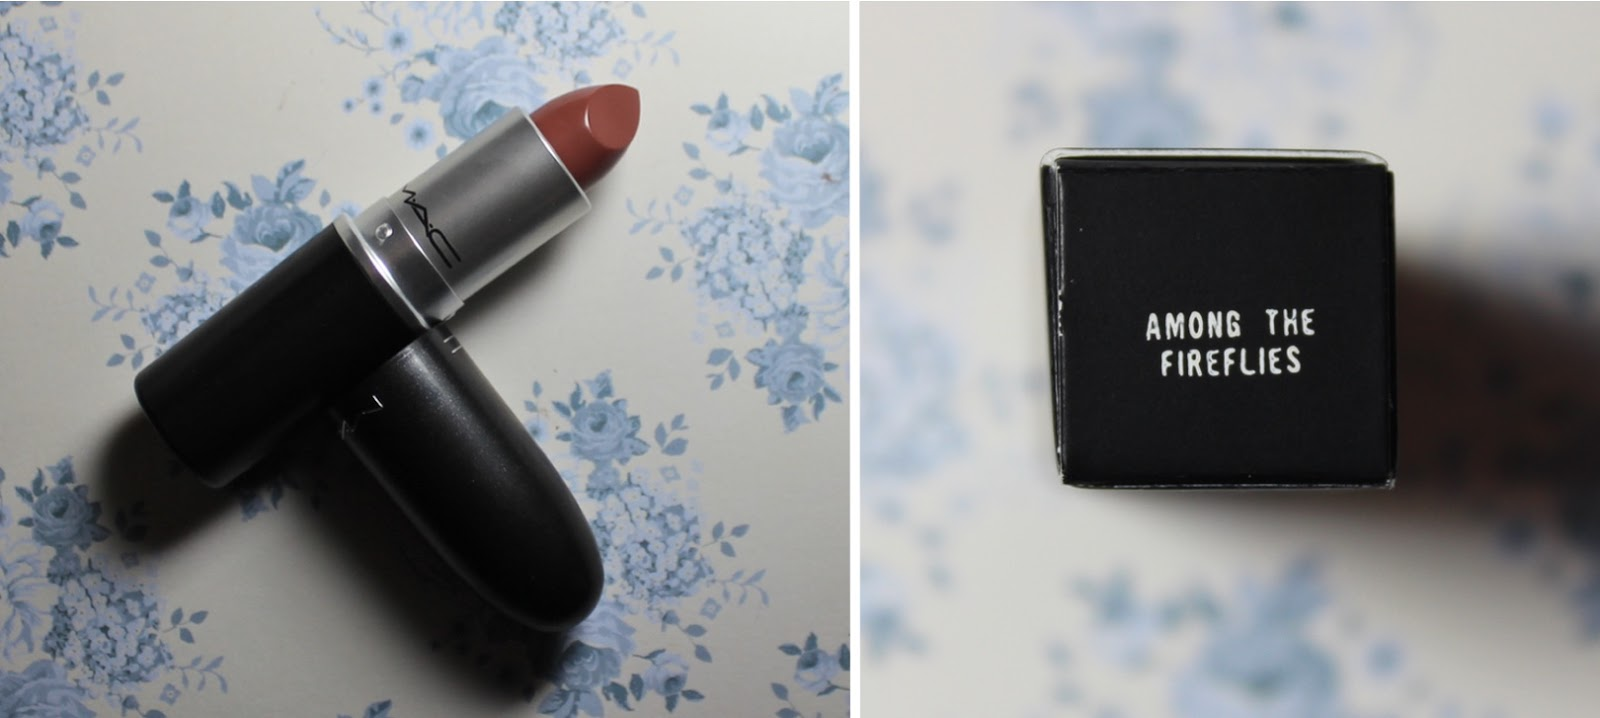 mac among the fireflies lipstick